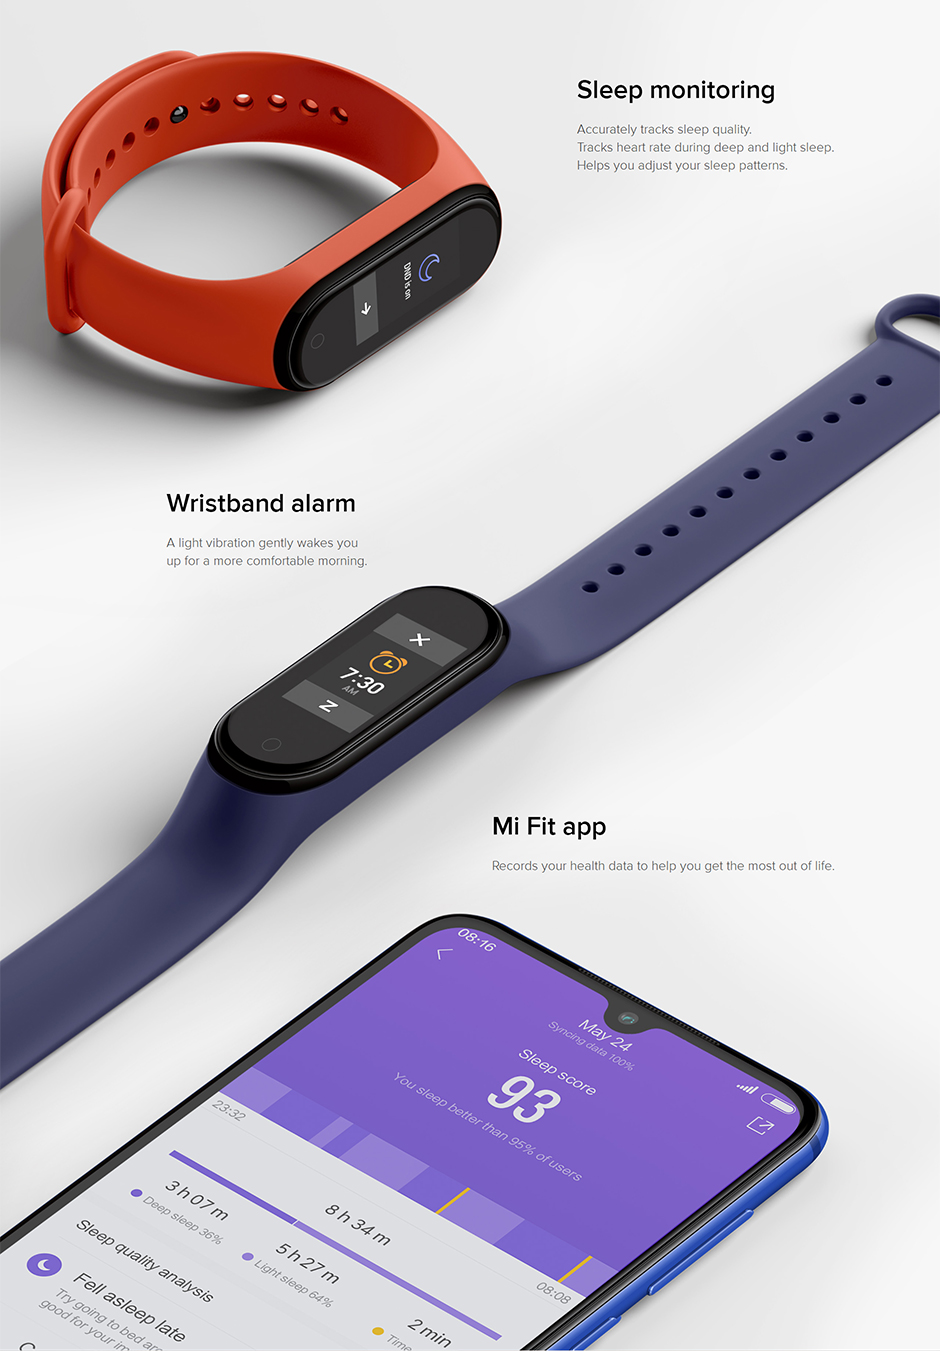 H8176cf8e3be64a2e803934531239a0044 Xiaomi Mi Band 4 Smart Bracelet 3 Color Miband 4 Smartband AMOLED Screen Fitness Traker Bluetooth Sport Waterproof Smart Band